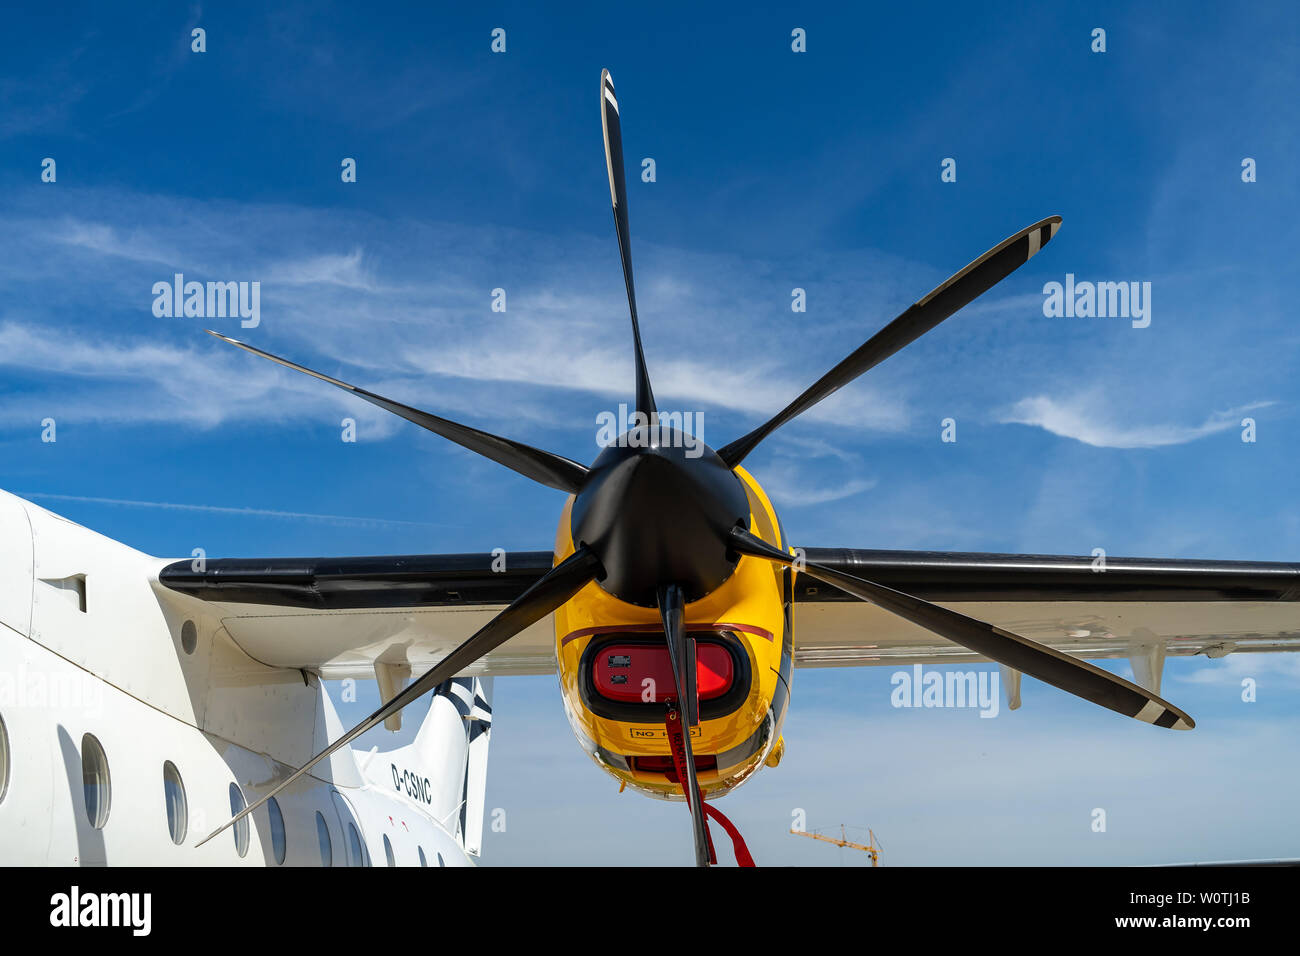 BERLIN - APRIL 28, 2018: Engine of a turboprop-powered commuter airliner Dornier 328-110, closeup. Exhibition ILA Berlin Air Show 2018. - Stock Image